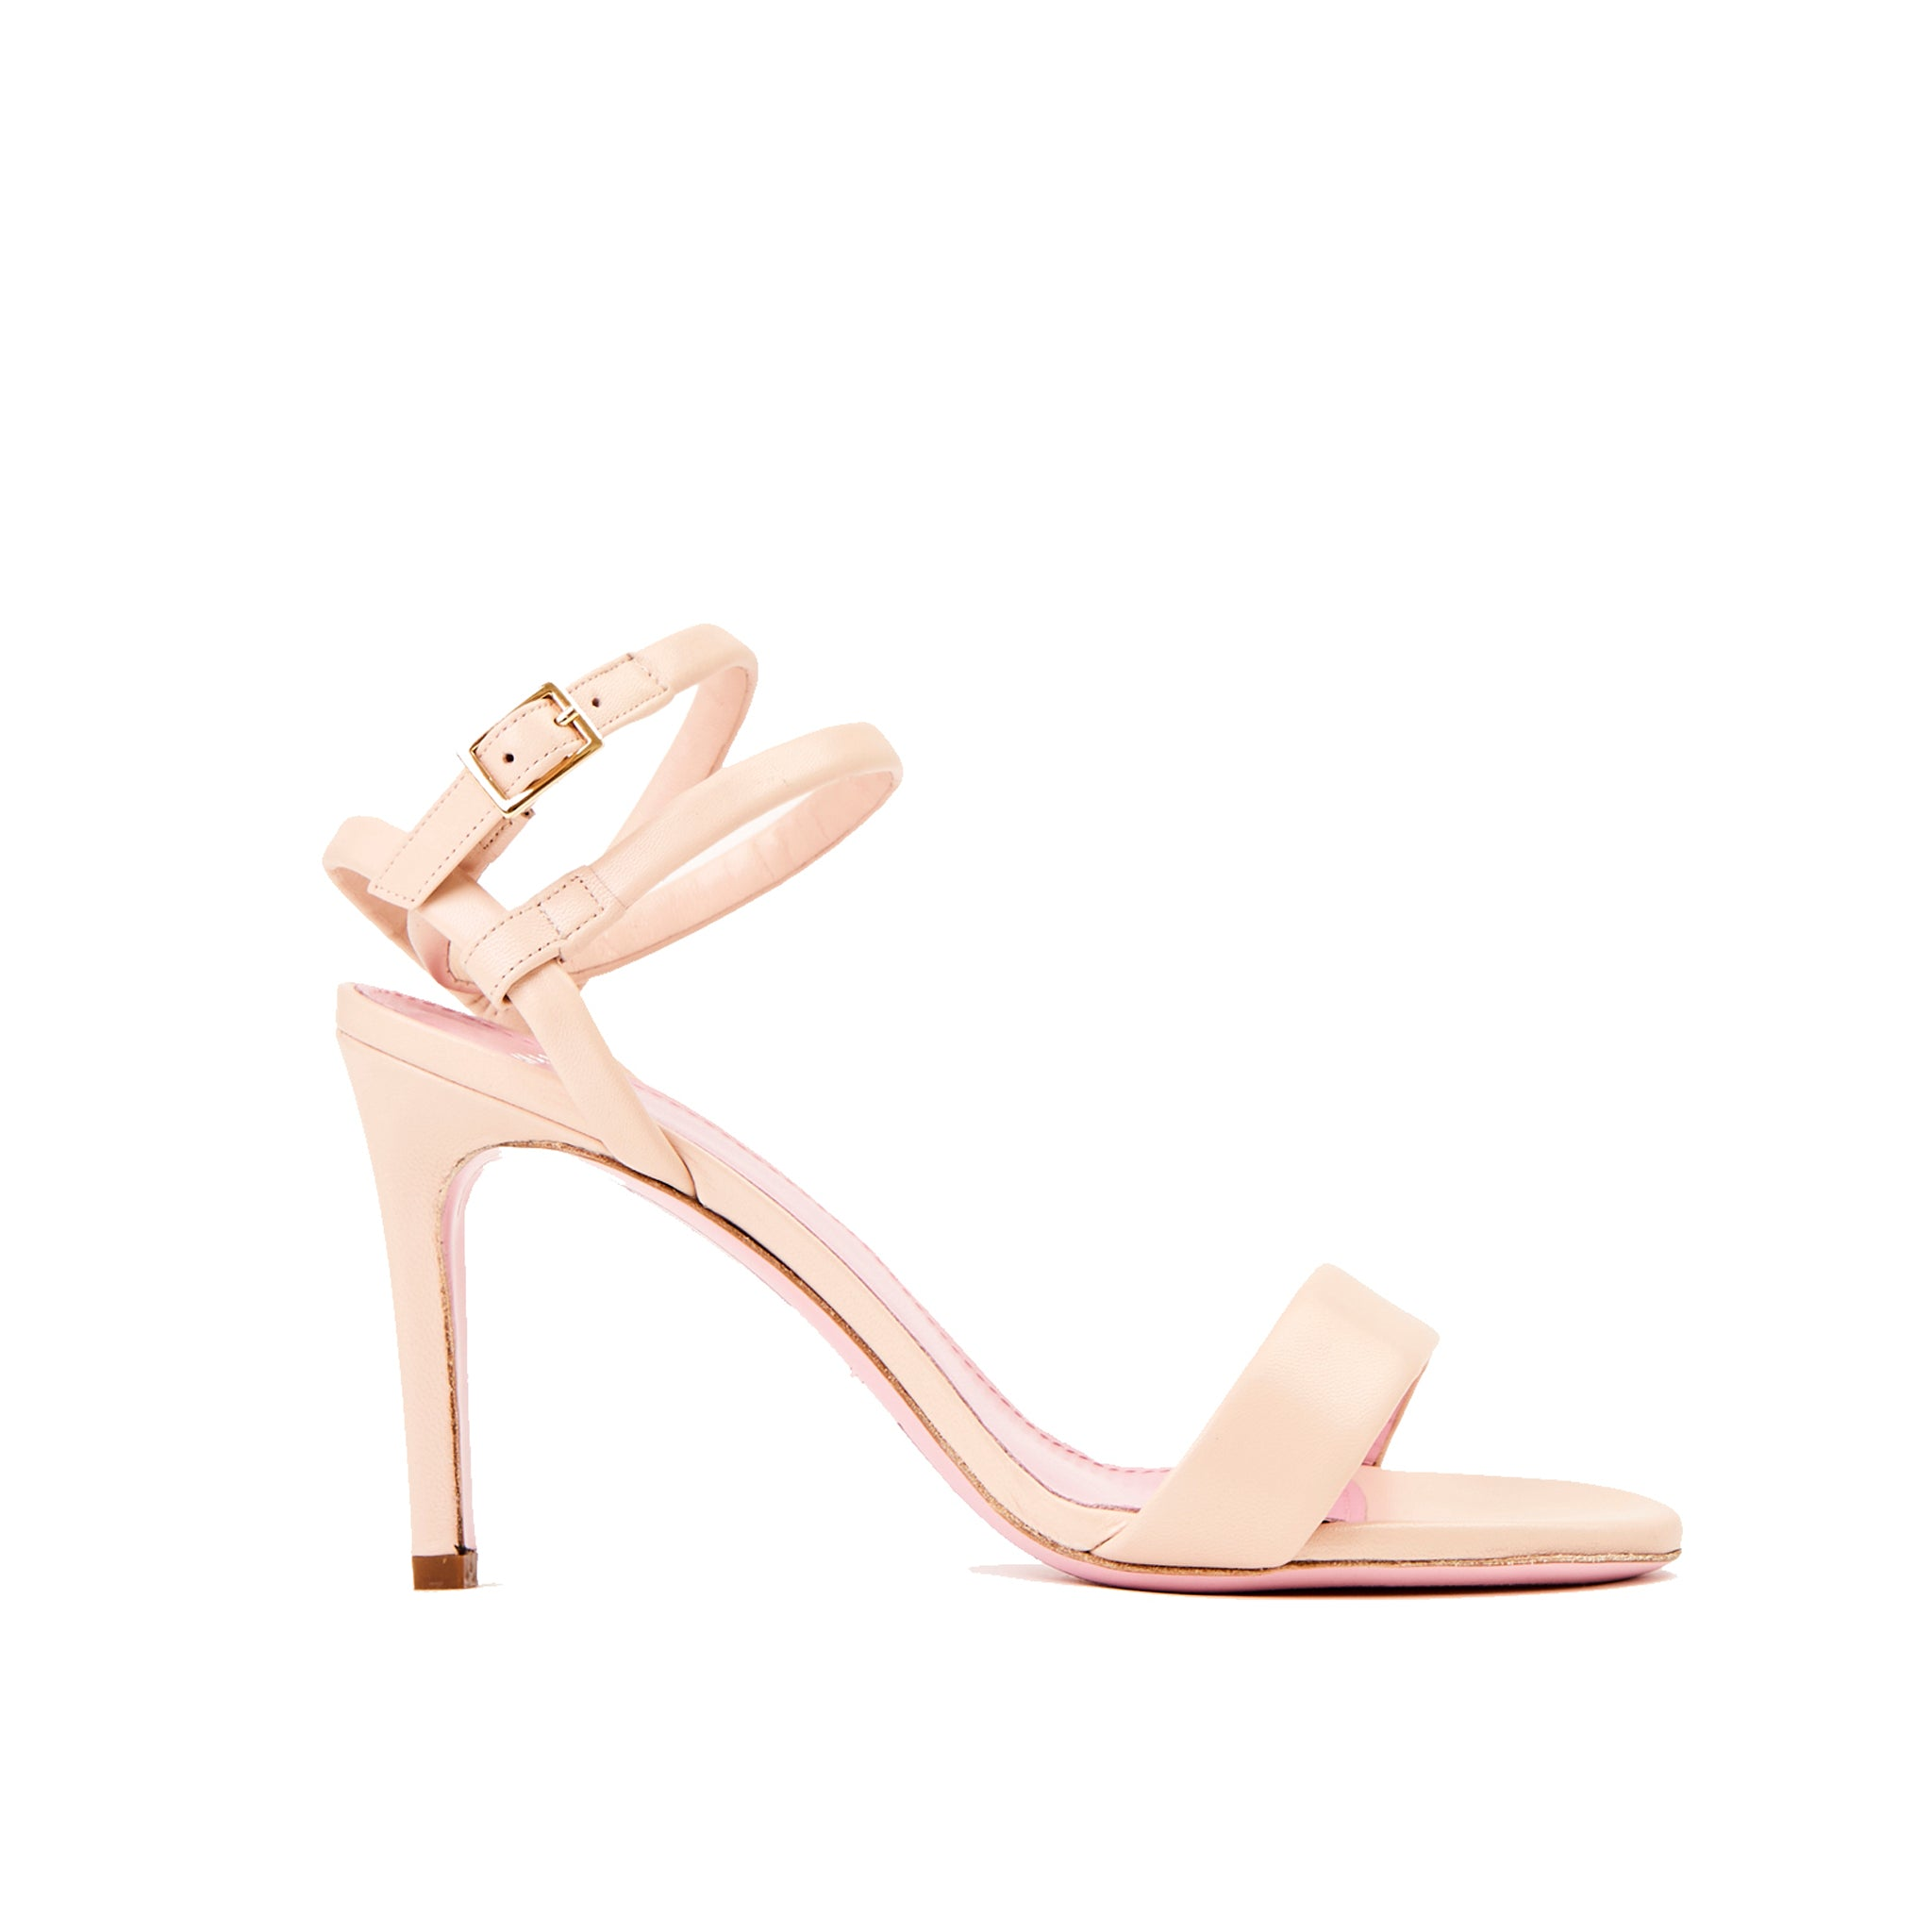 Phare Wrap ankle strap high heel sandal in pelle leather